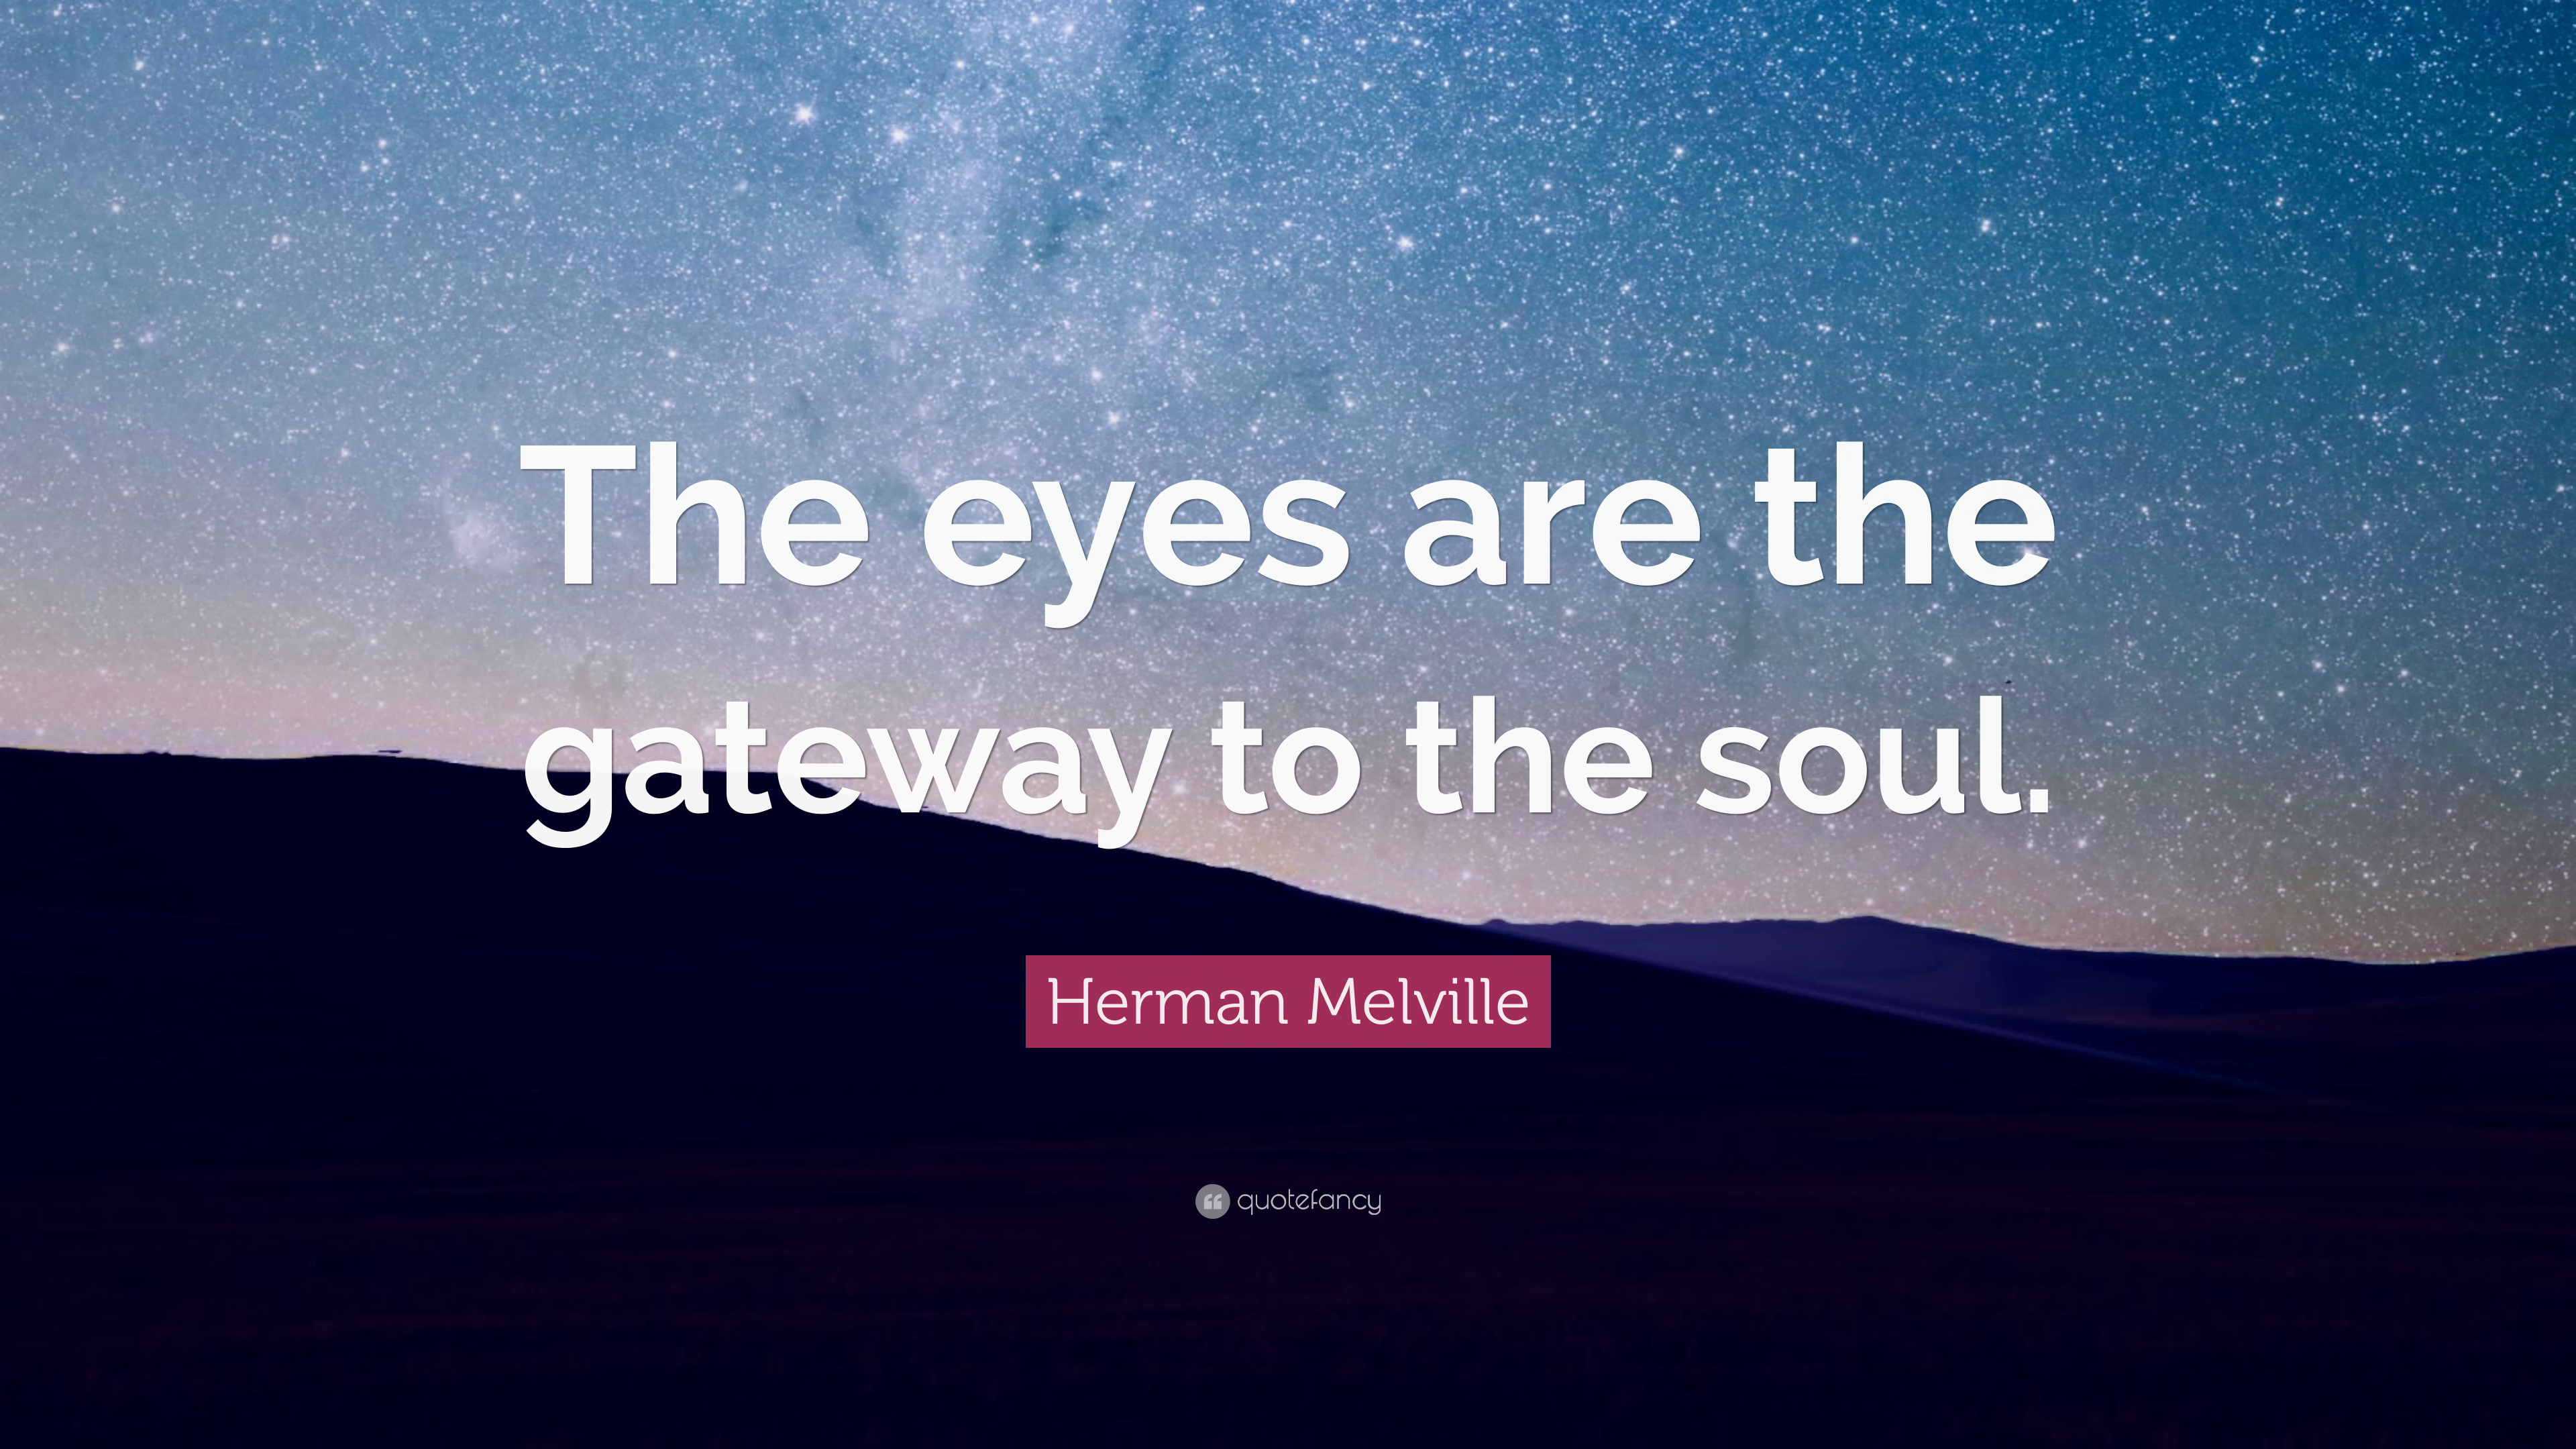 eyes are gateway to the soul